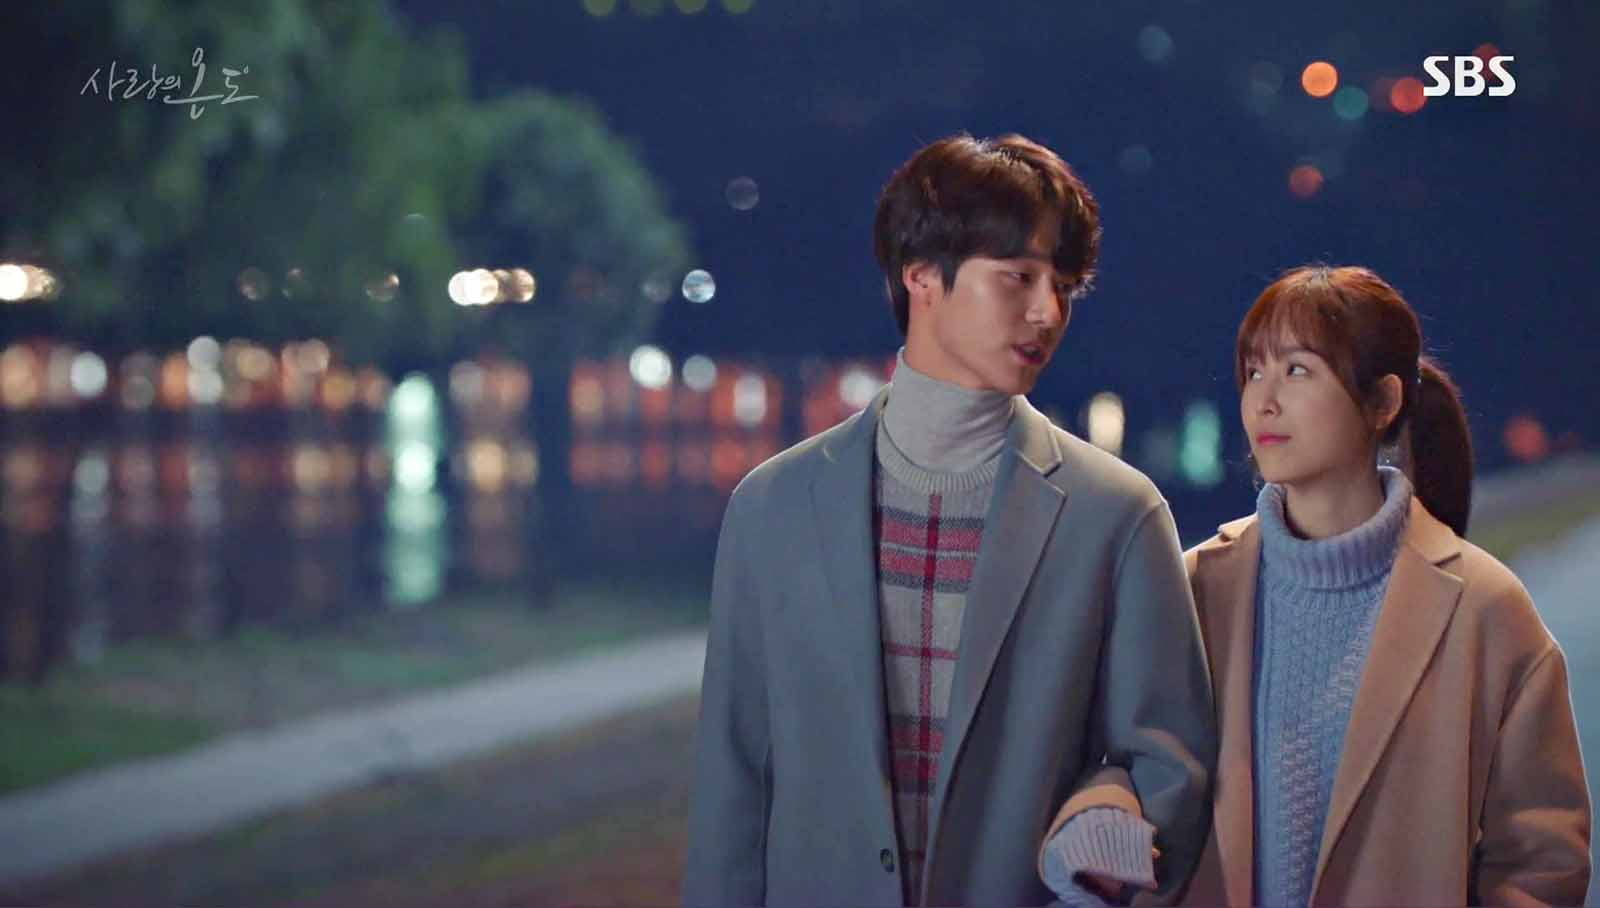 If you're as obsessed with Korean drama as we are, you definitely have your favorite couples. Do your OTPs match up with ours?